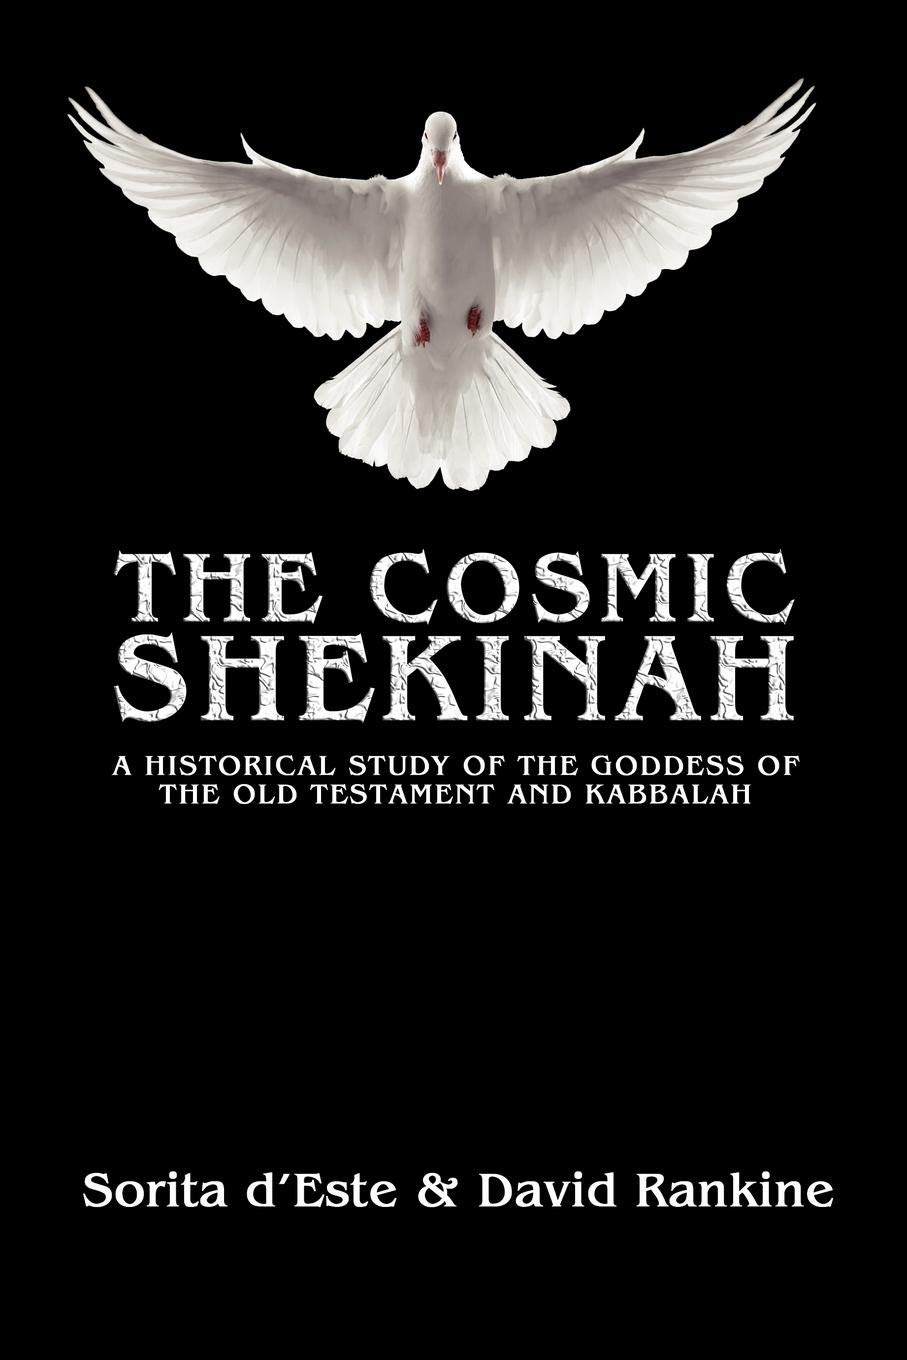 The Cosmic Shekinah: A historical study of the